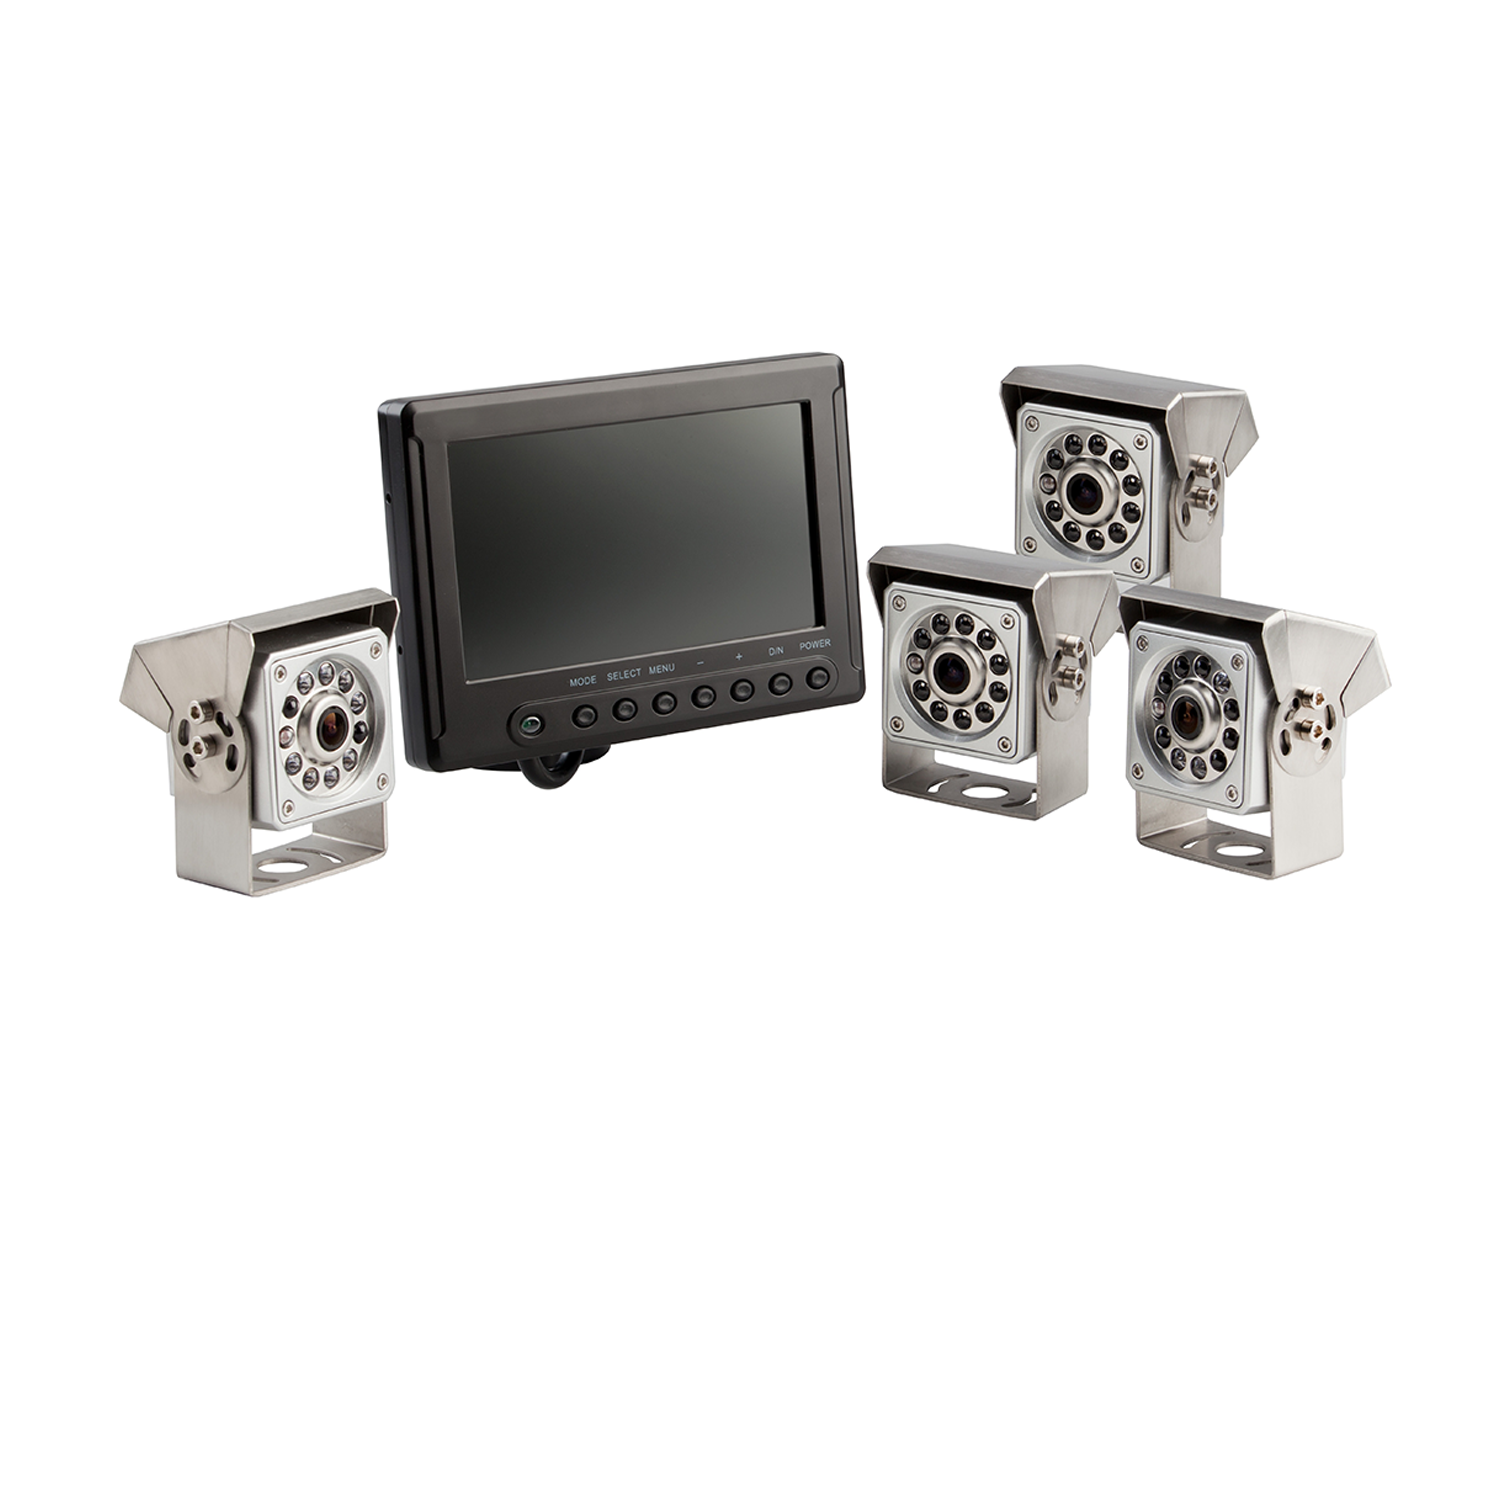 7.0inch HD Weatherproof Quad View Four Mining Camera Kit